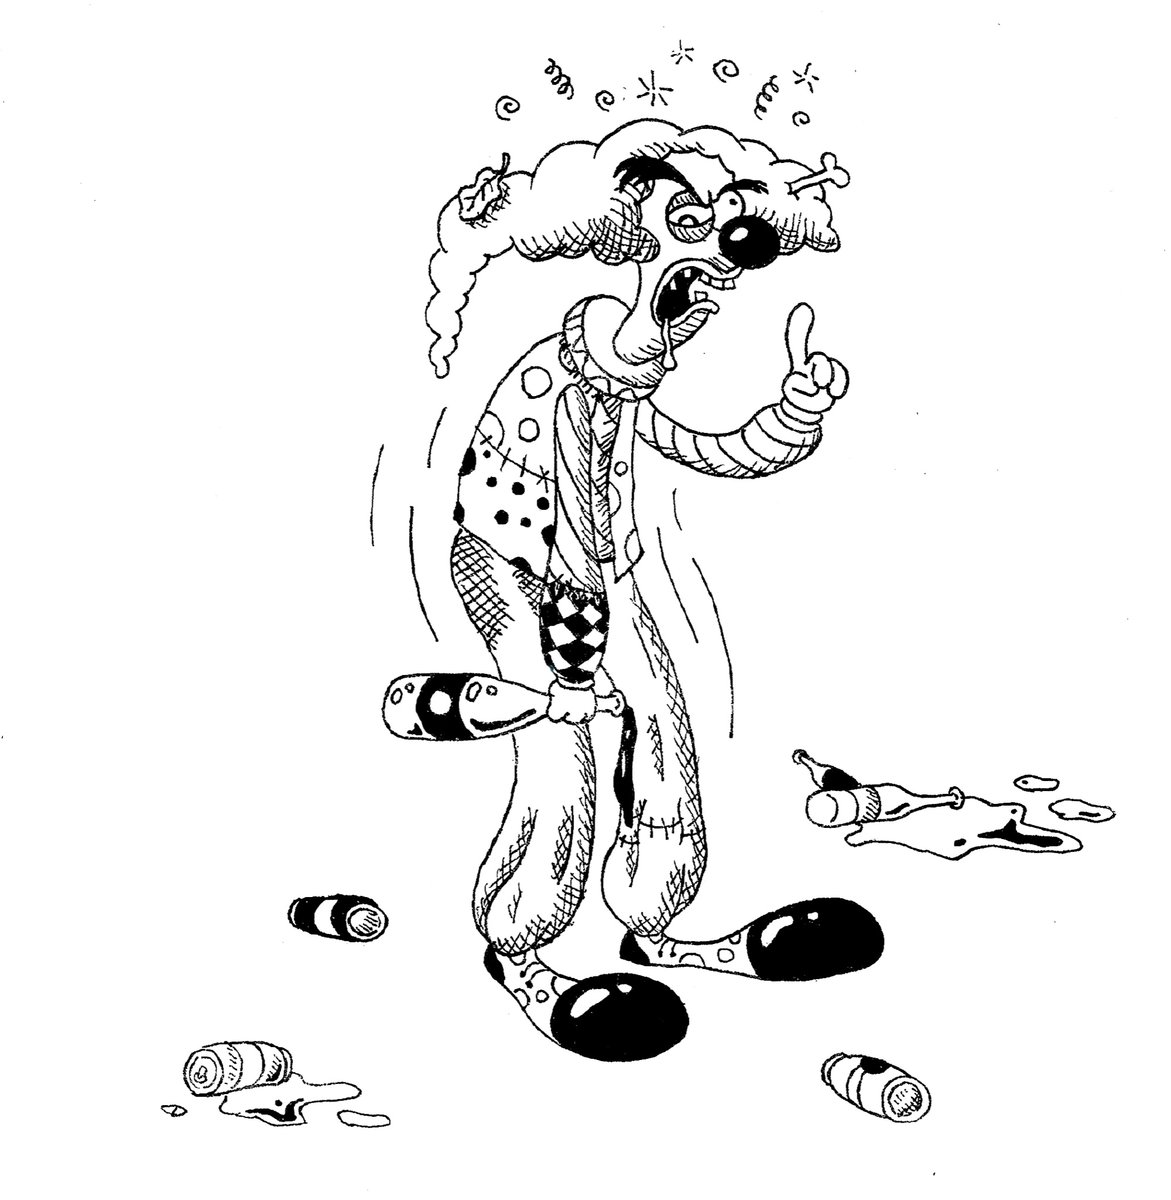 Inktober 2020 Day 19: Dizzy.      Time to drink the bad opinion juice and fall down.      #dizzy #inktober2020 #blackandwhite #penandink #traditionalart #crosshatching #clown #patchwork #filthy #beercans #alcohol #drunk https://t.co/BJYnduPy5n